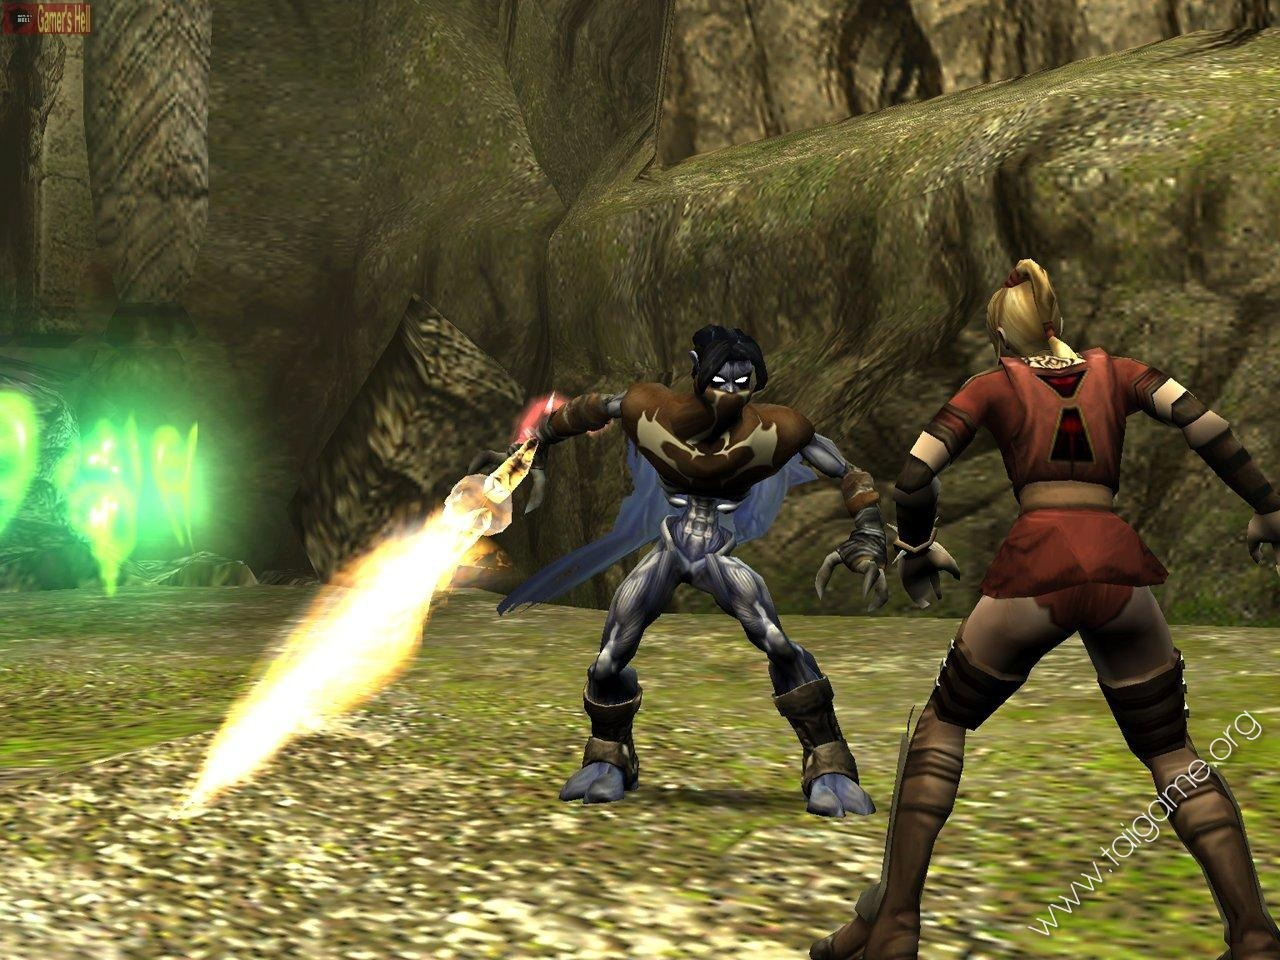 Legacy of Kain Defiance Cheats Codes and Secrets for PC - GameFAQs